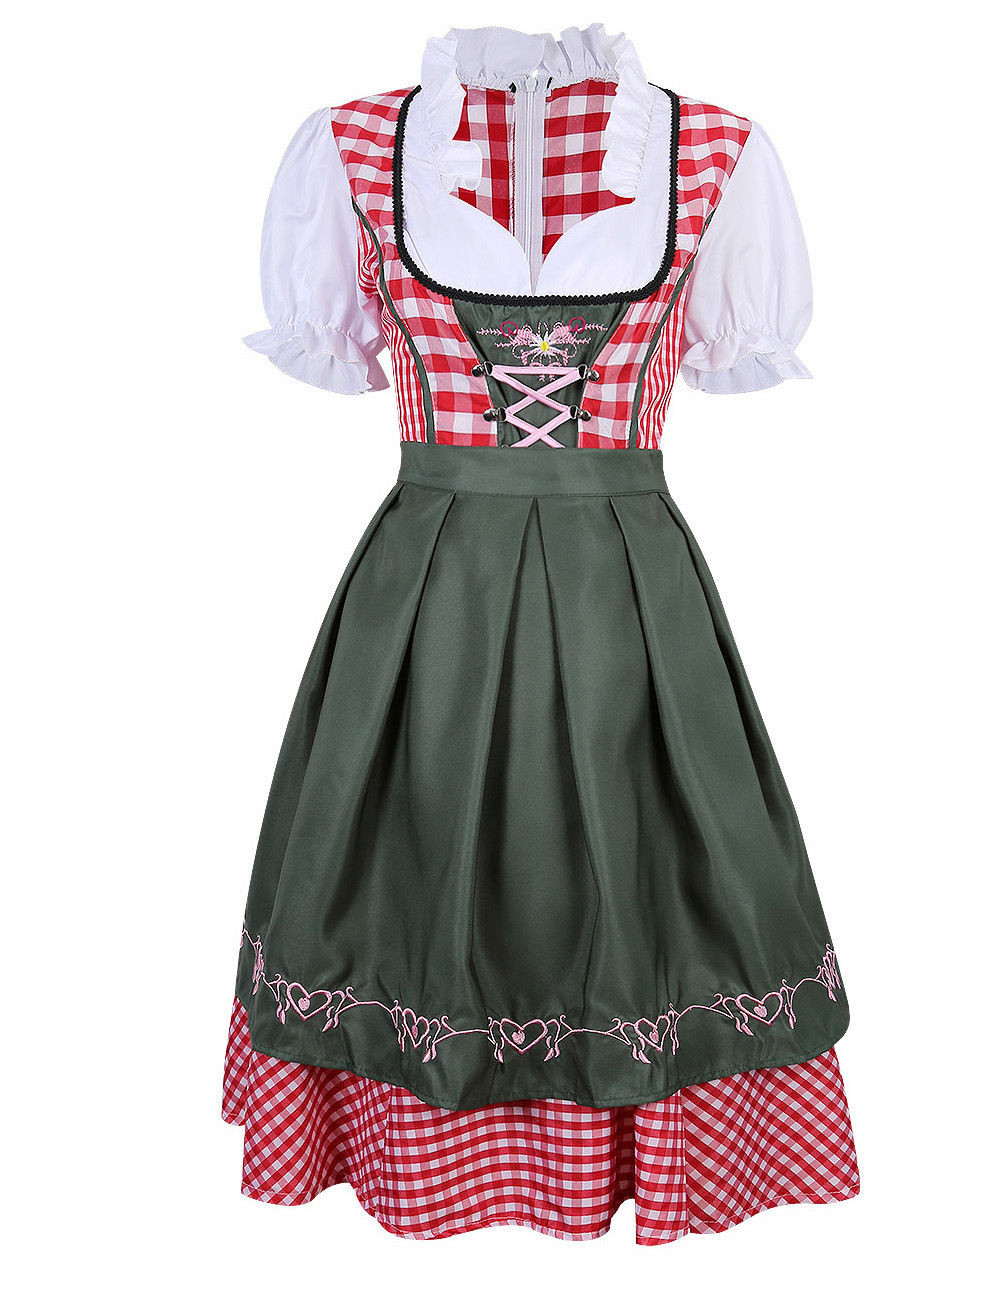 Plaid Dirndl Dress German Bavarian Oktoberfest Beer Wench Costume